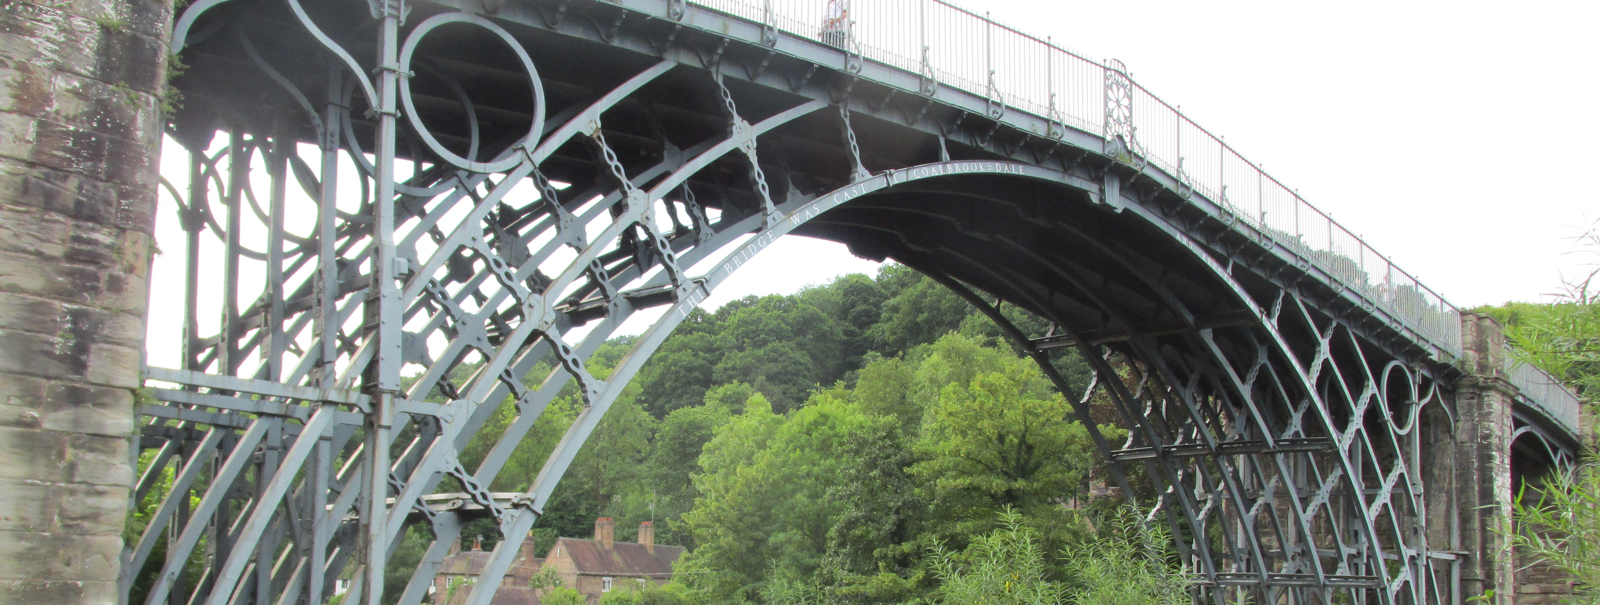 The Iron Bridge, Telford